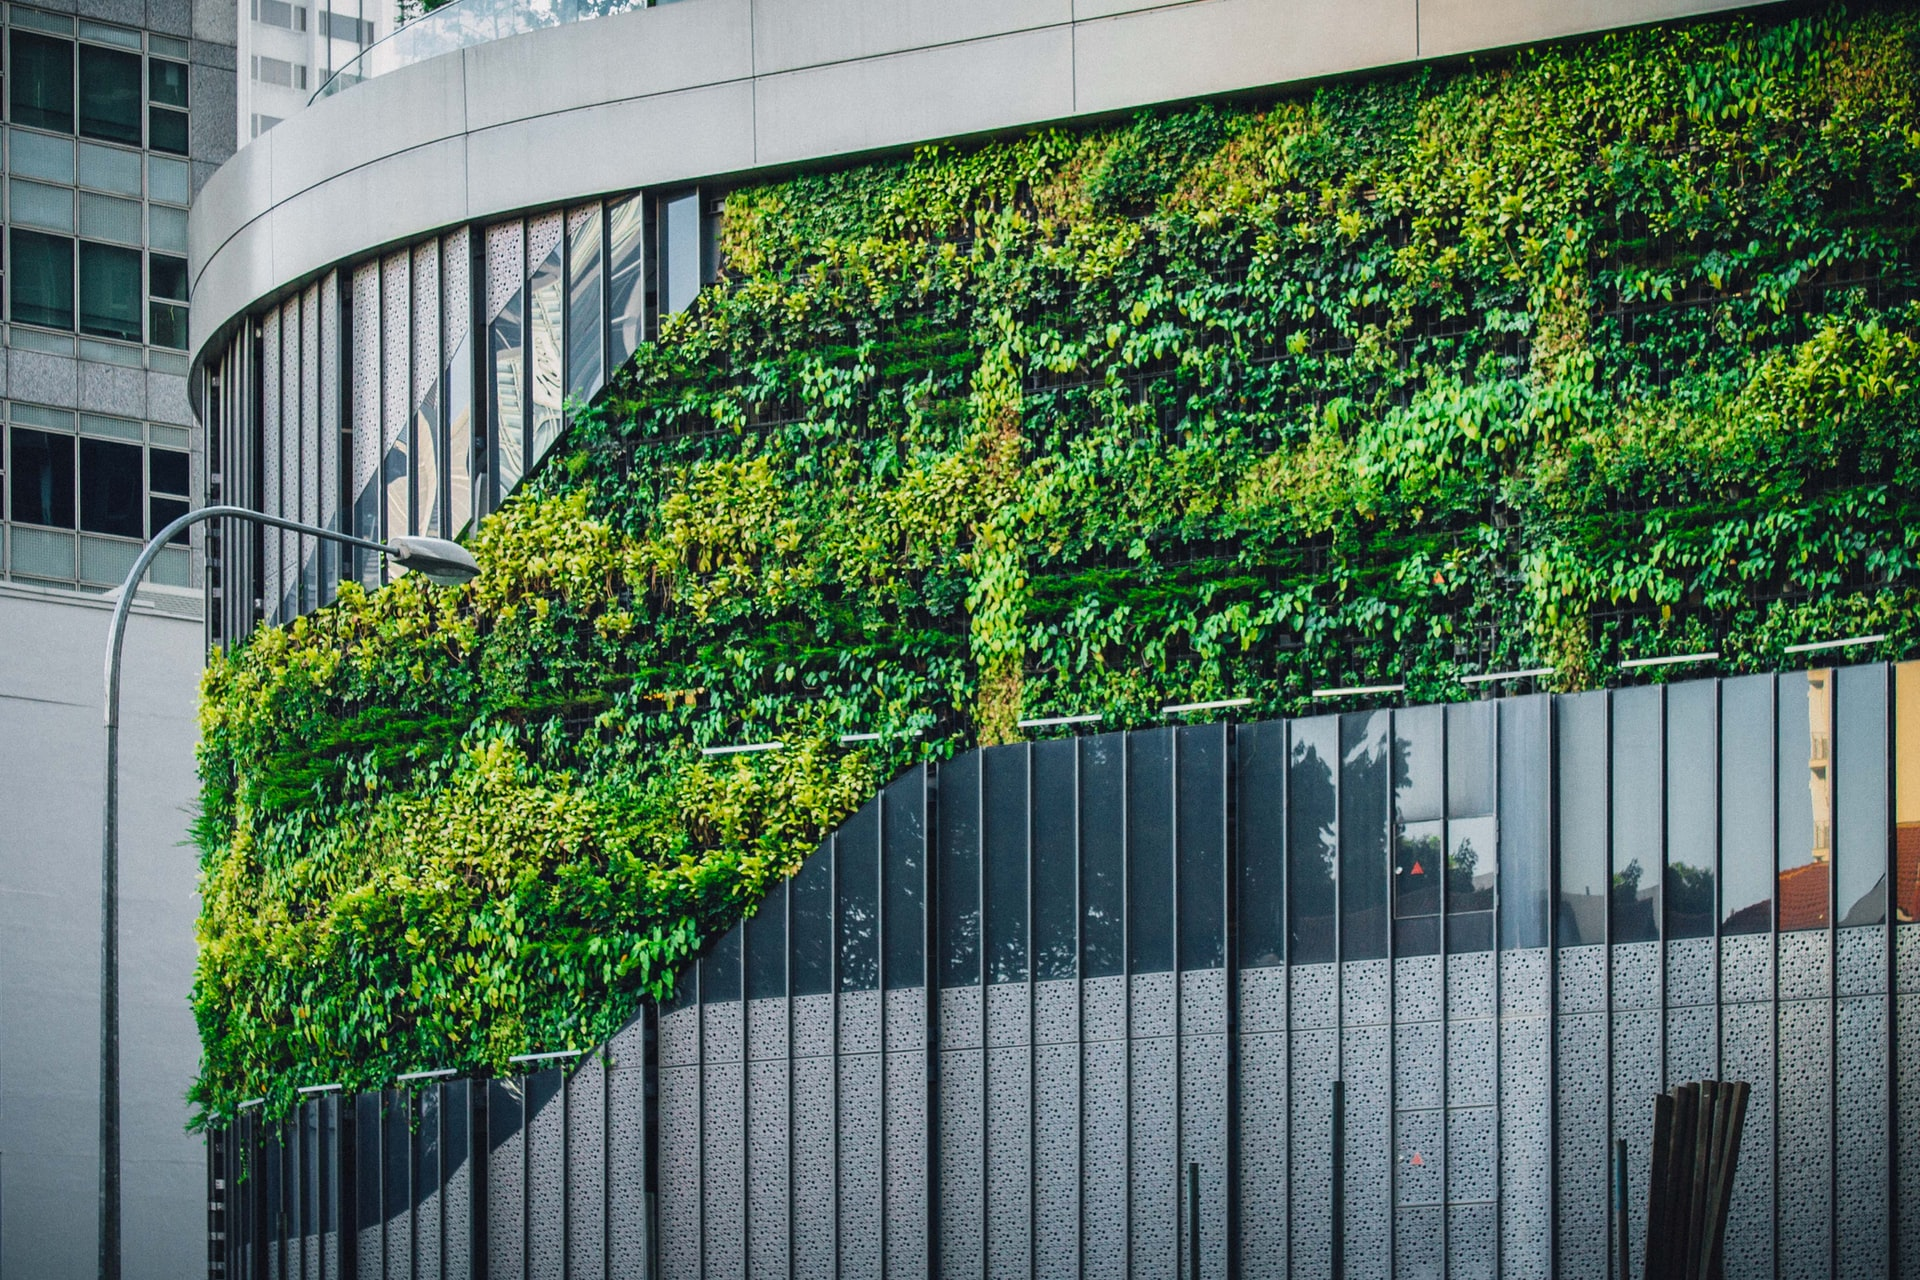 LEED Green Building Rating Systems in Florida